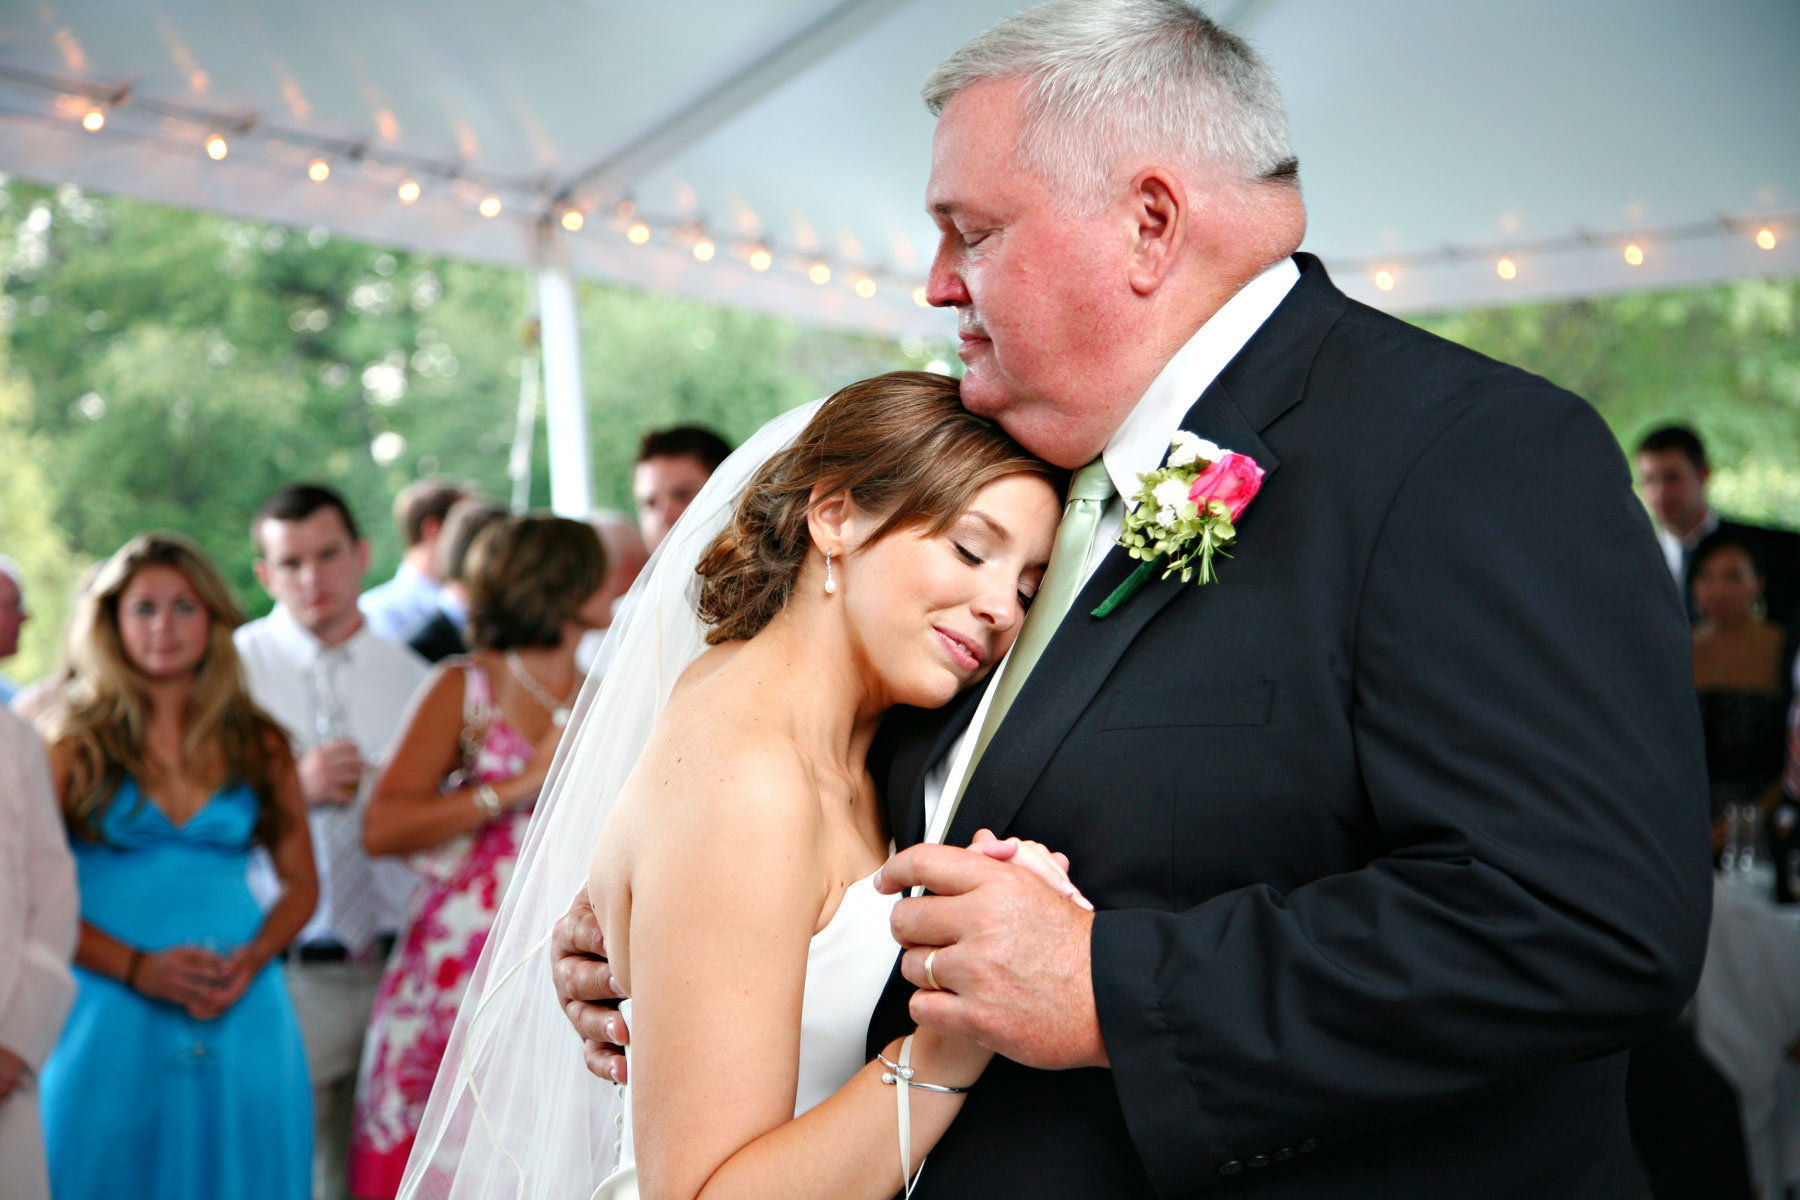 Pictures Showcasing Father And Daughter Will Melt Your Heart